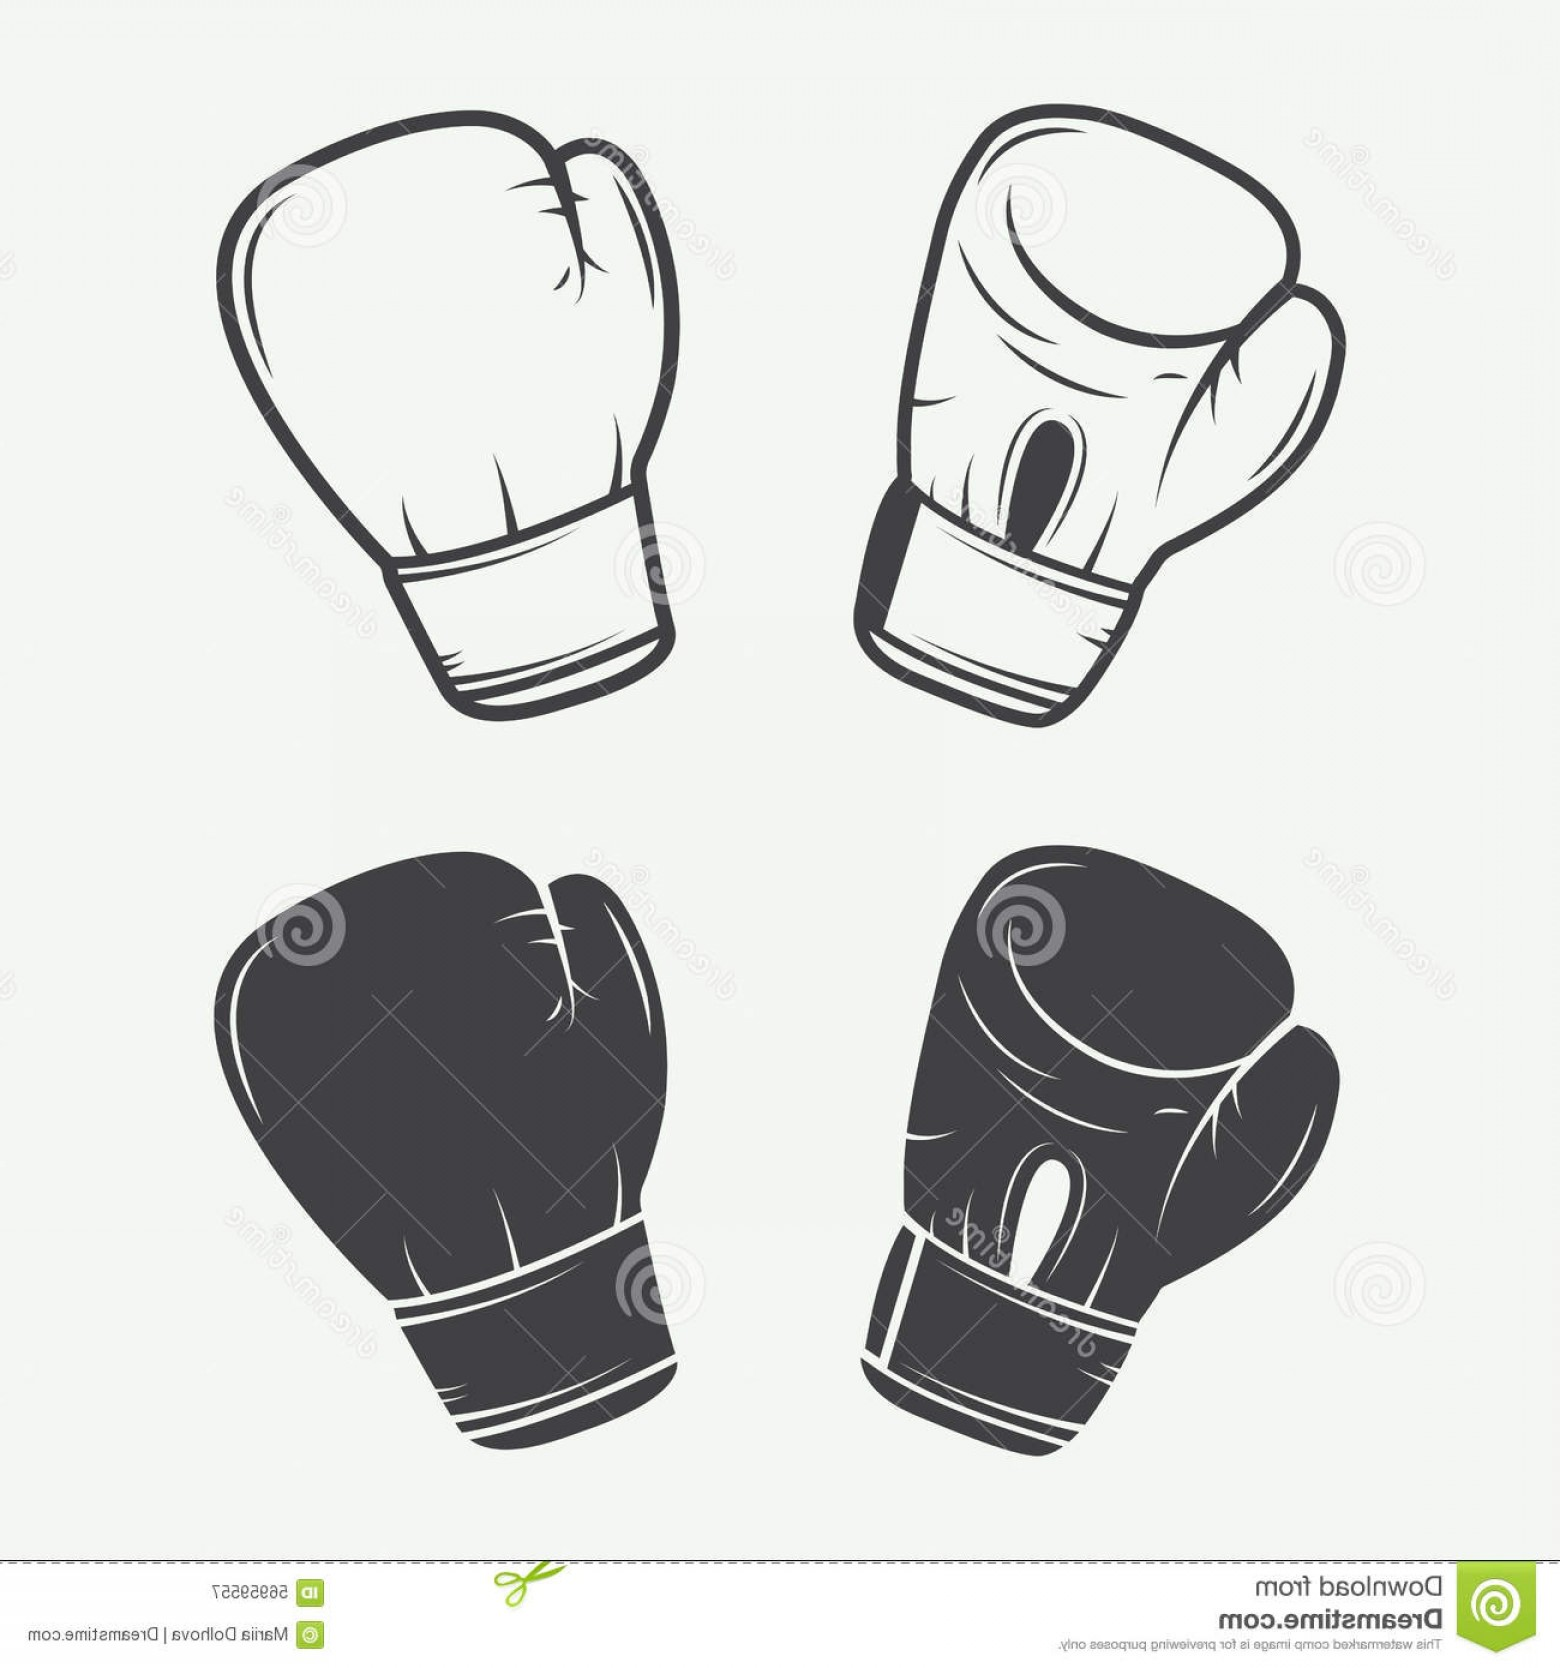 Pictures Of Boxing Gloves Vector Art: Stock Illustration Boxing Gloves Vintage Style Vector Illustration Image